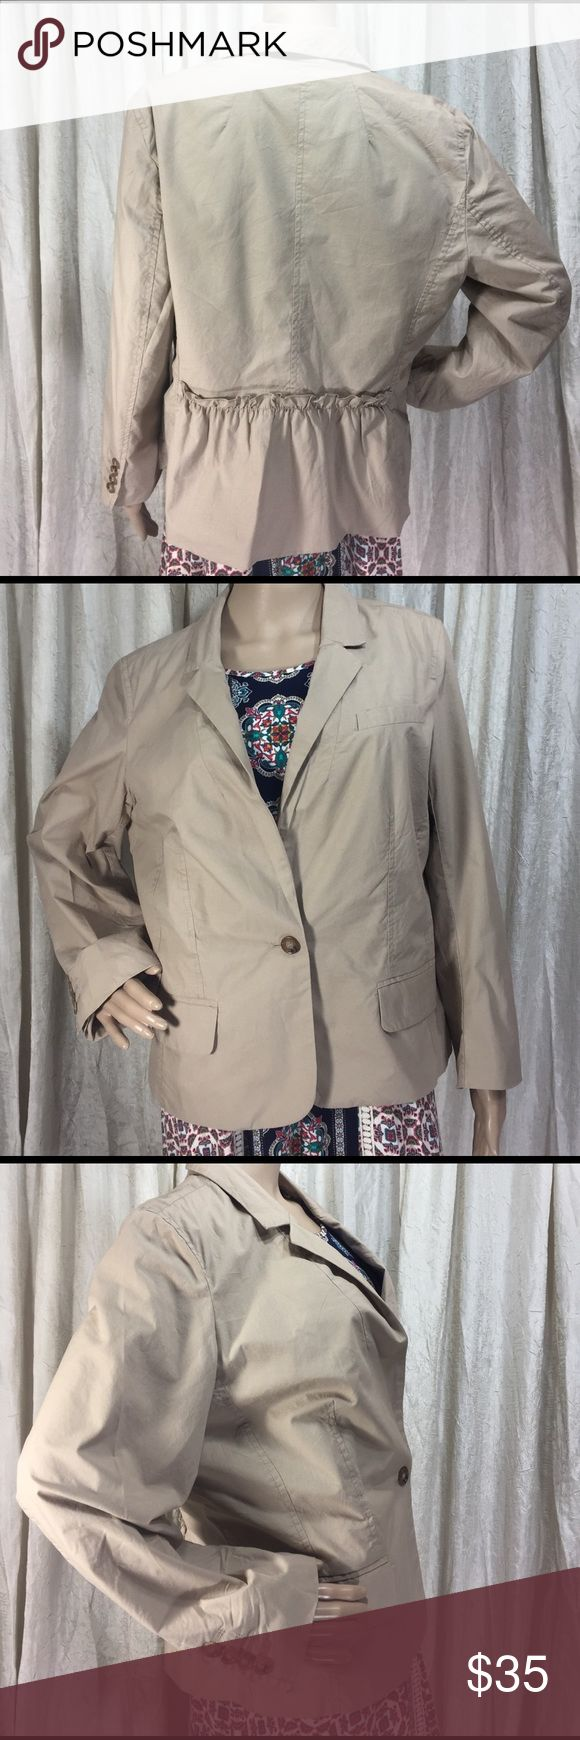 Beige Cotton Blazer Jacket the Loft size 14 NWT Beige cotton blazer from the loft, size 14, length 24.5 inches, sleeve 21.5 inches, bust 40 inches. NWT cute RUFFLE detail on back LOFT Jackets & Coats Blazers